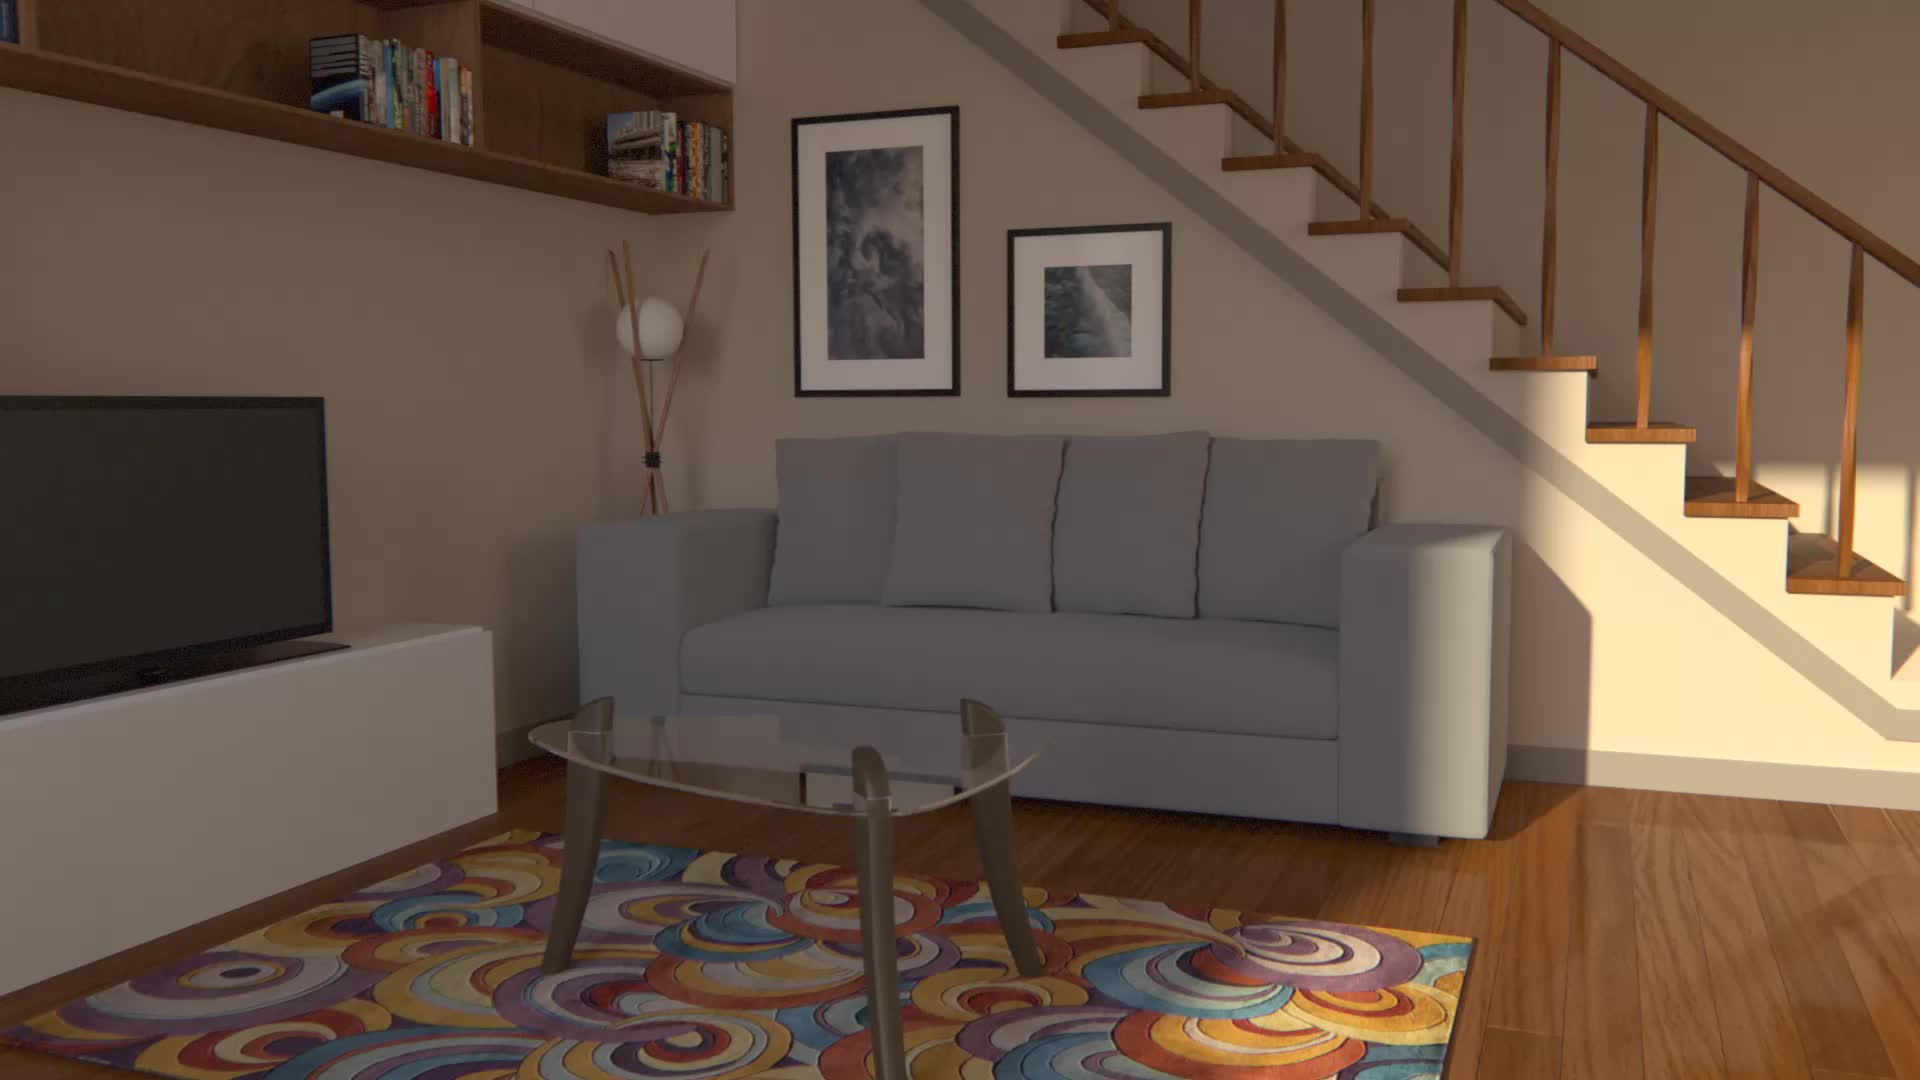 3d, animation, archvis, cg, loop, mash, maya, minneapolis, redshift, simulation, New Apt GIFs